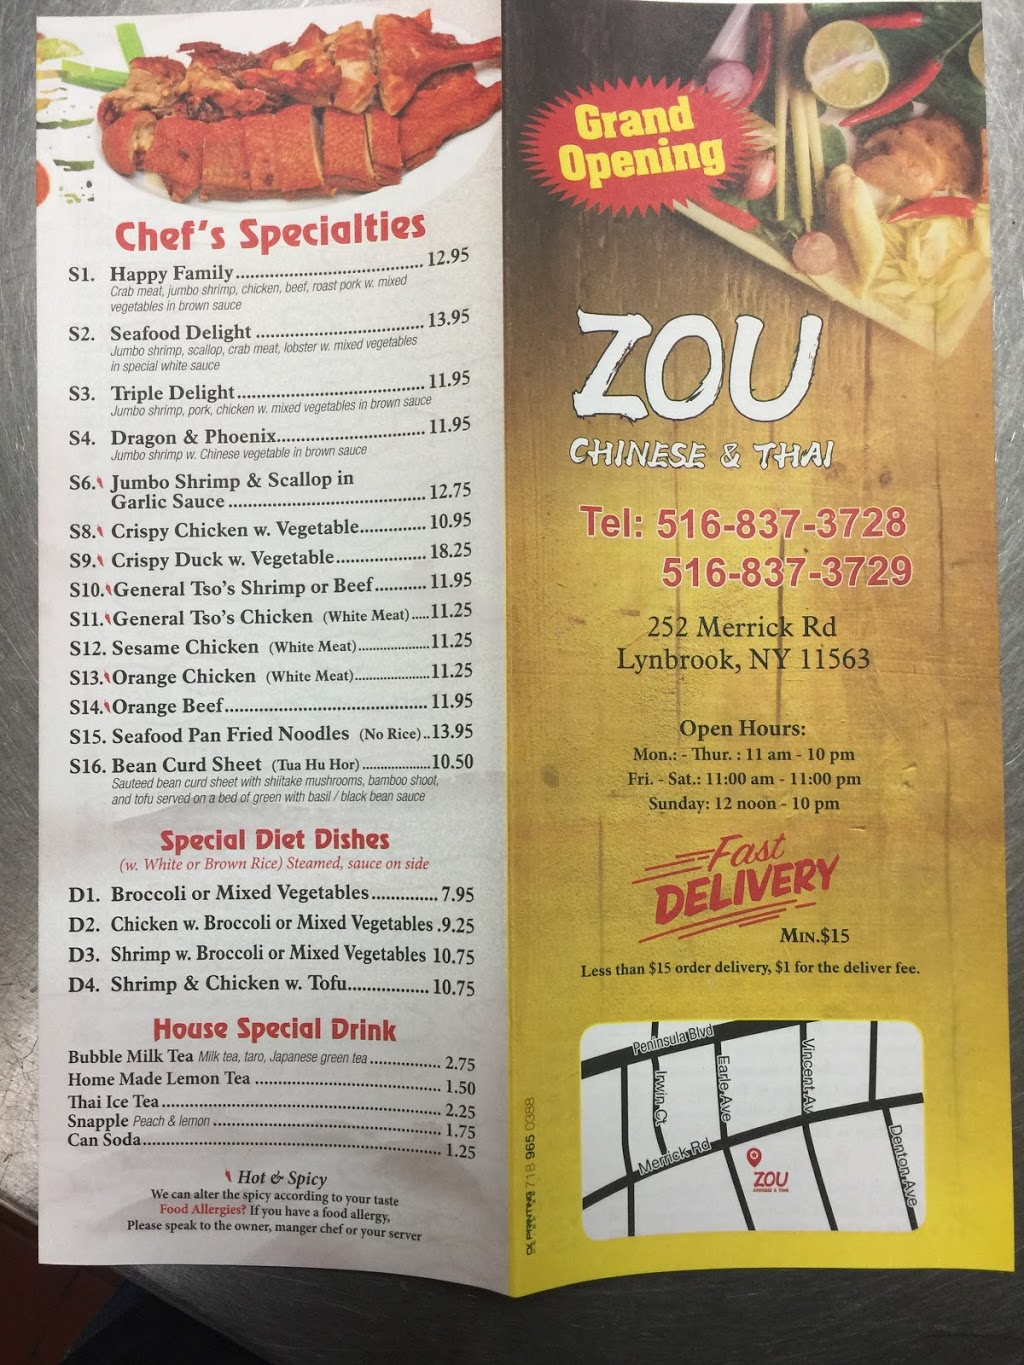 Zou Chinese And Thai - restaurant  | Photo 2 of 3 | Address: 252 Merrick Rd, Lynbrook, NY 11563, USA | Phone: (516) 837-3728